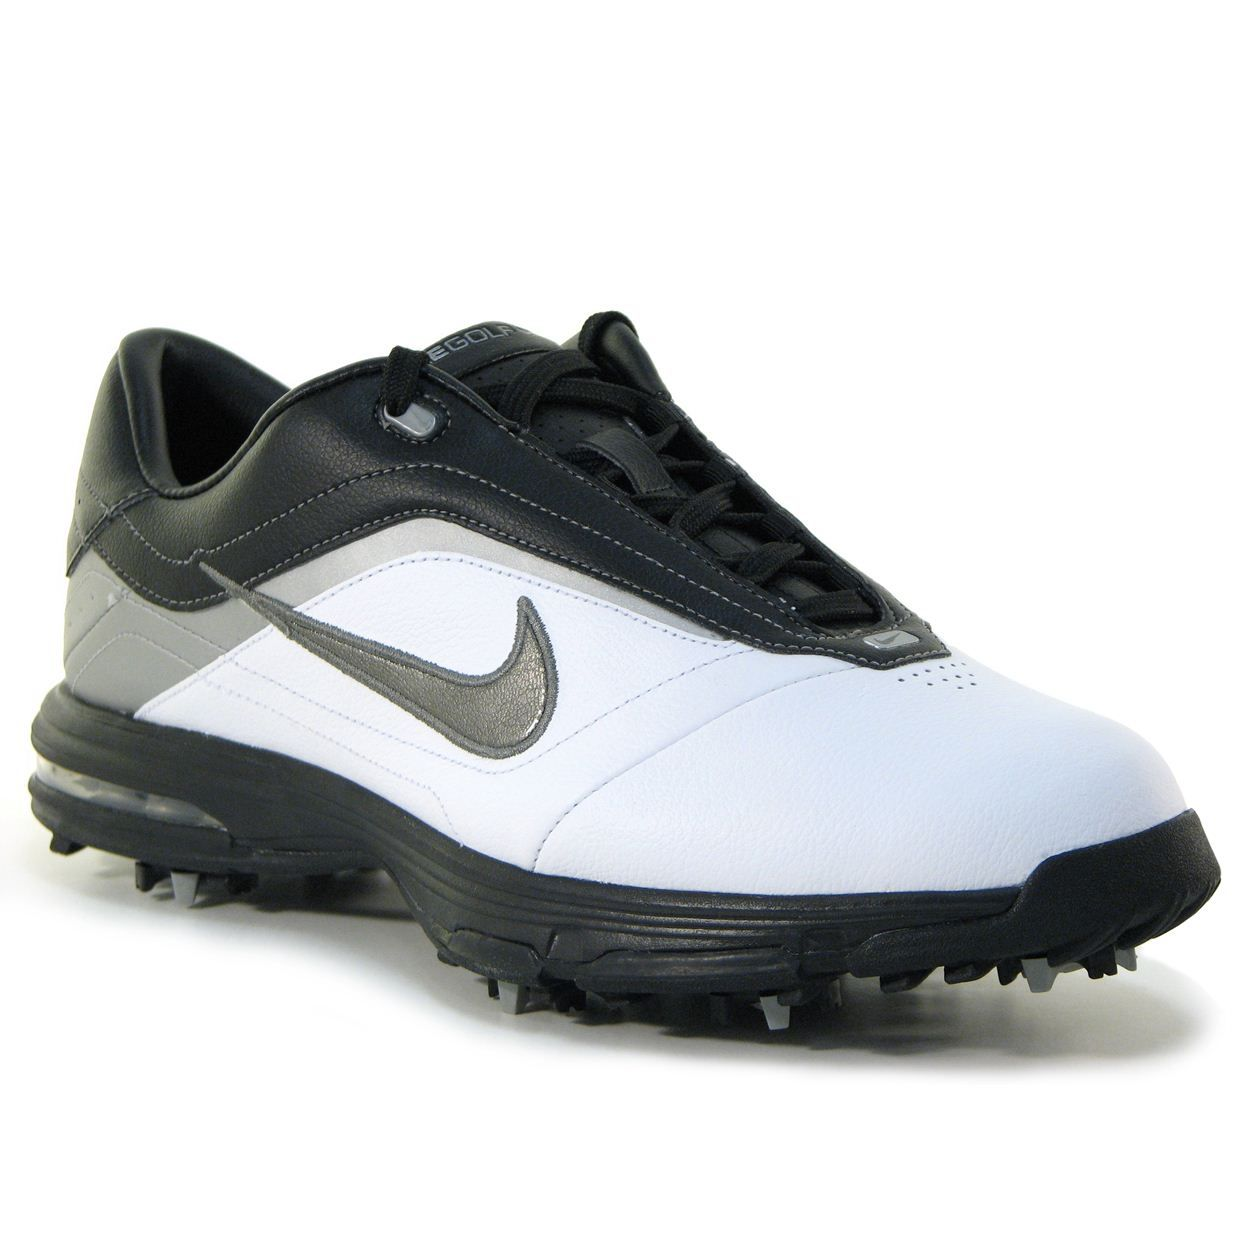 info for 9b186 27937 Nike Air Academy Golf Shoes